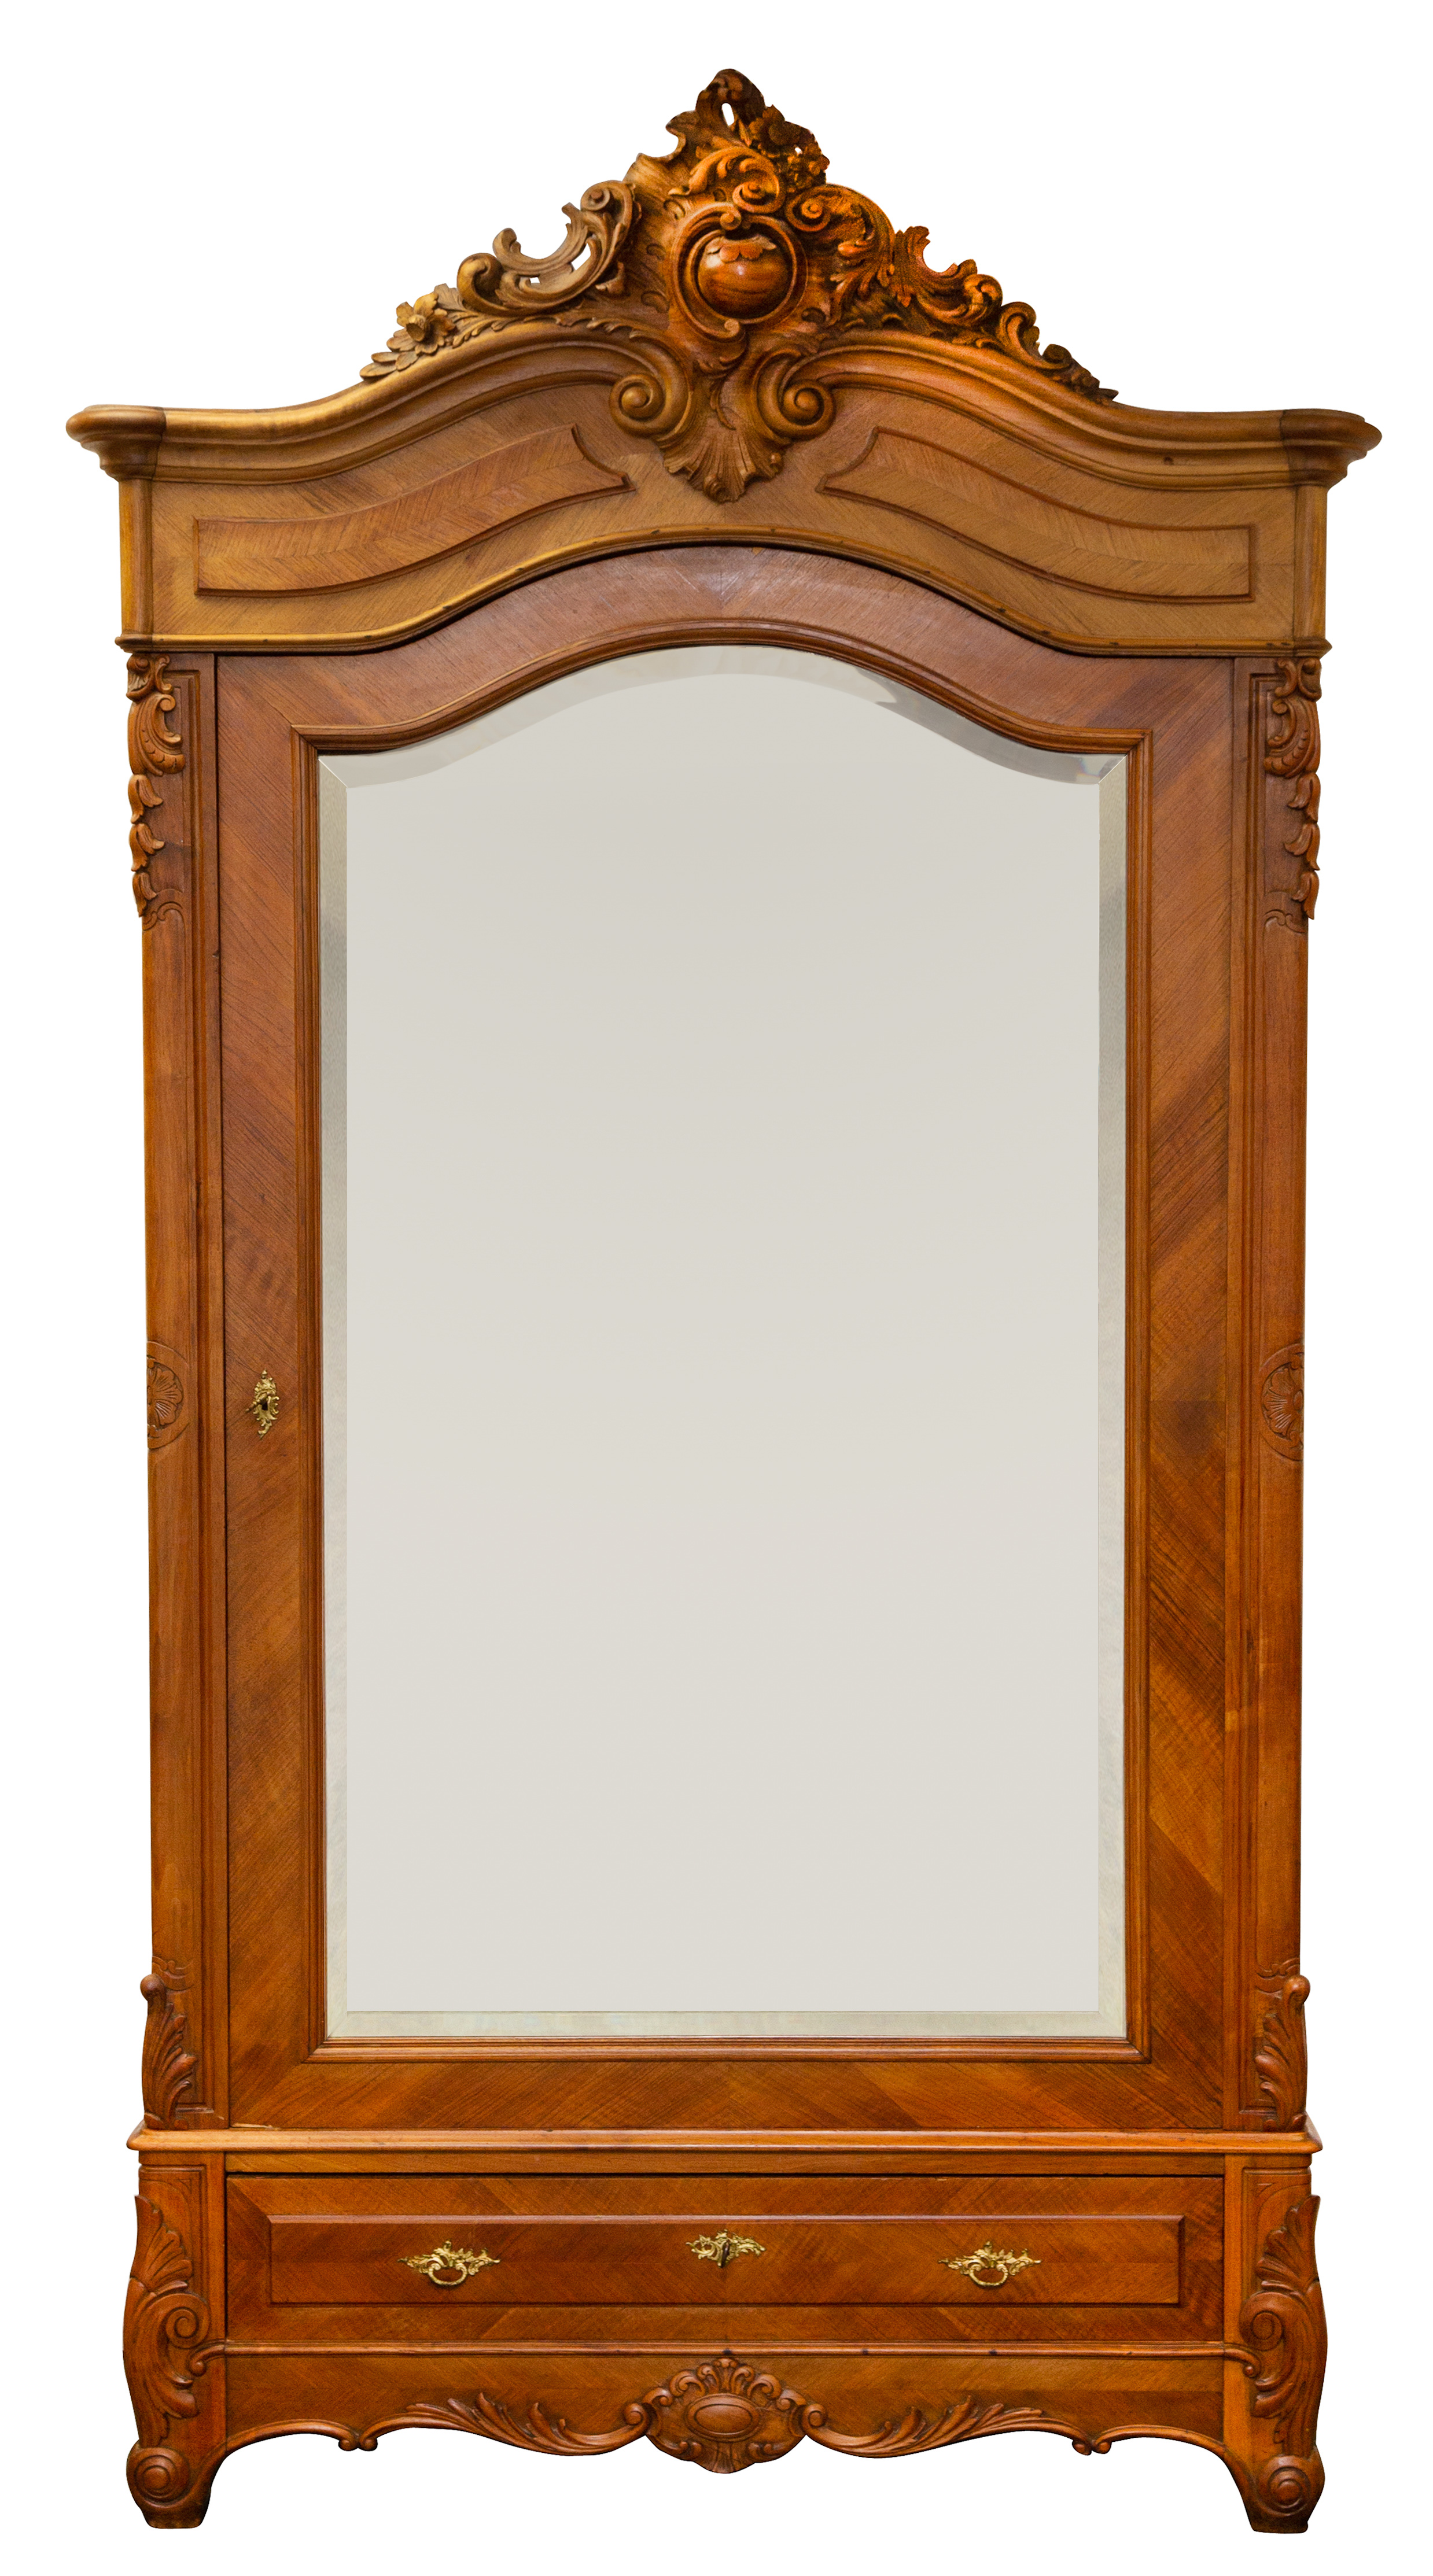 LATE 19TH CENTURY FRENCH REGENCE CARVED WALNUT OVERSIZED MIRRORED SINGLE DOOR ARMOIRE - Image 2 of 4